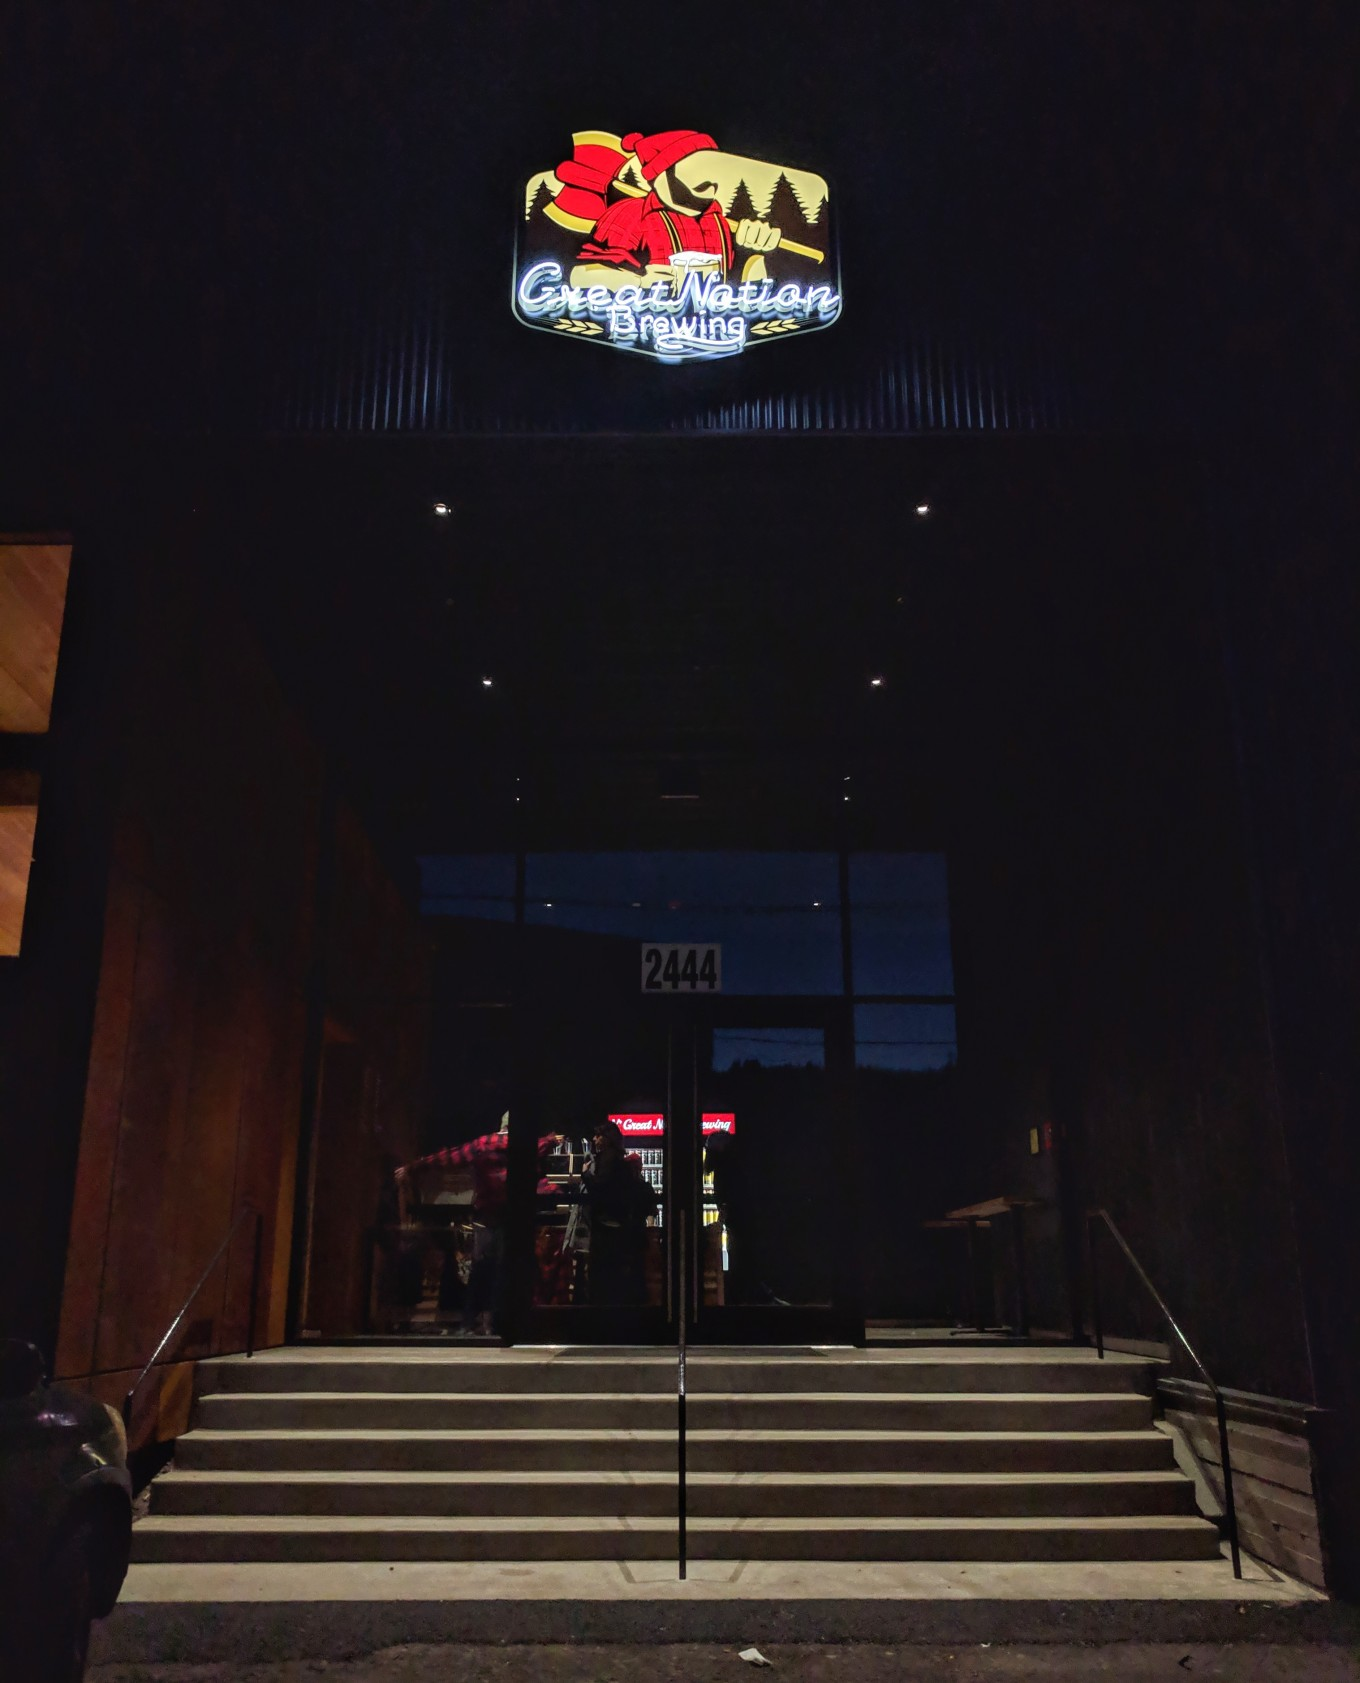 Great Notion Brewing NW Front Entrance Night Neon Sign Portland Oregon